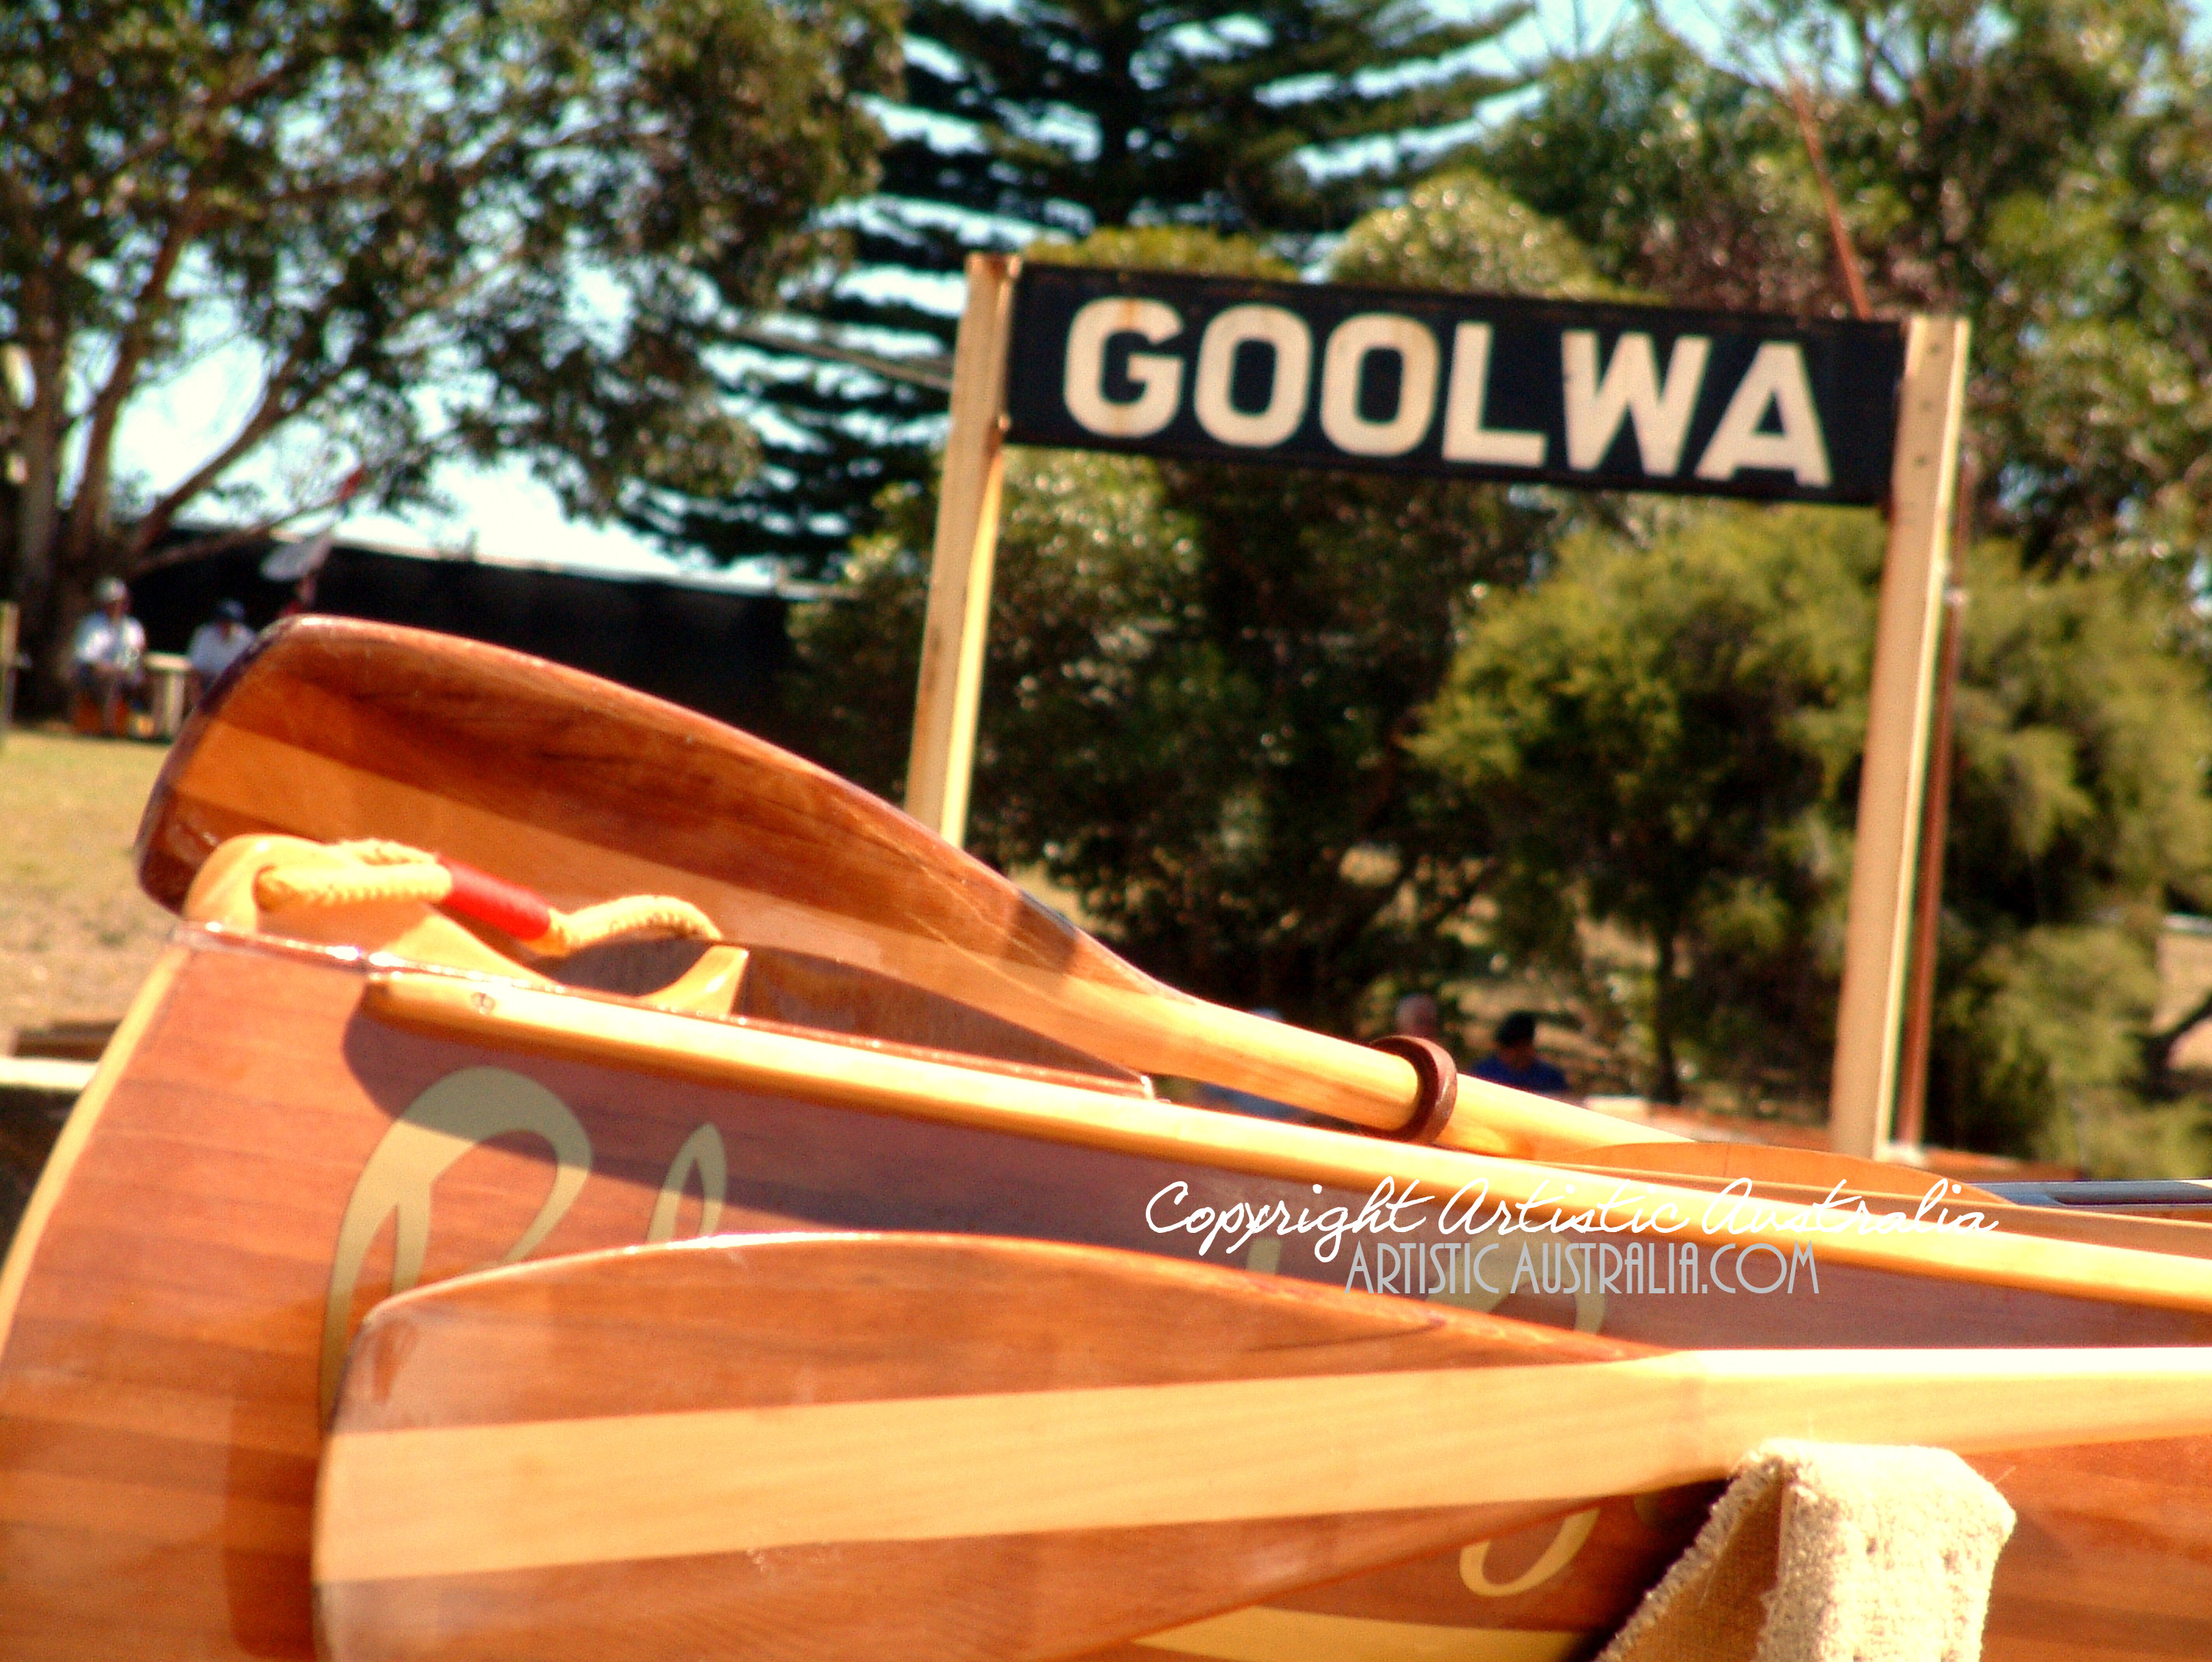 Enjoy Goolwa